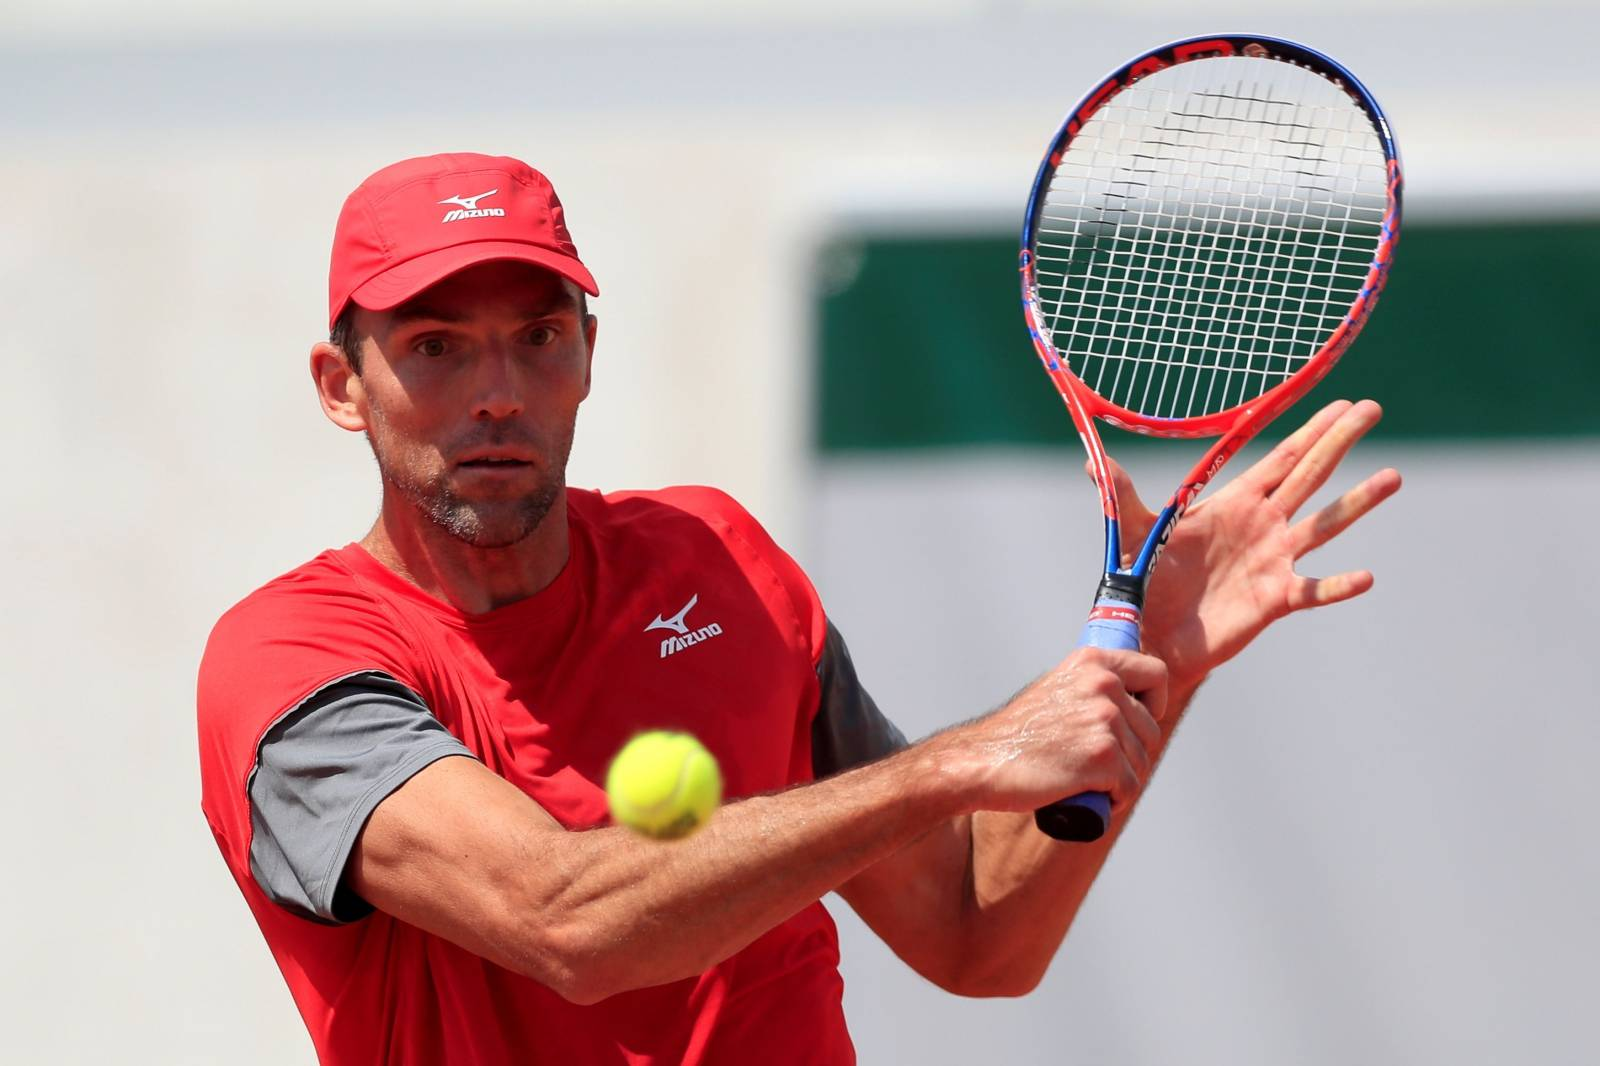 FILE PHOTO: Croatia's Ivo Karlovic at Roland Garros, Paris, France - May 27, 2018